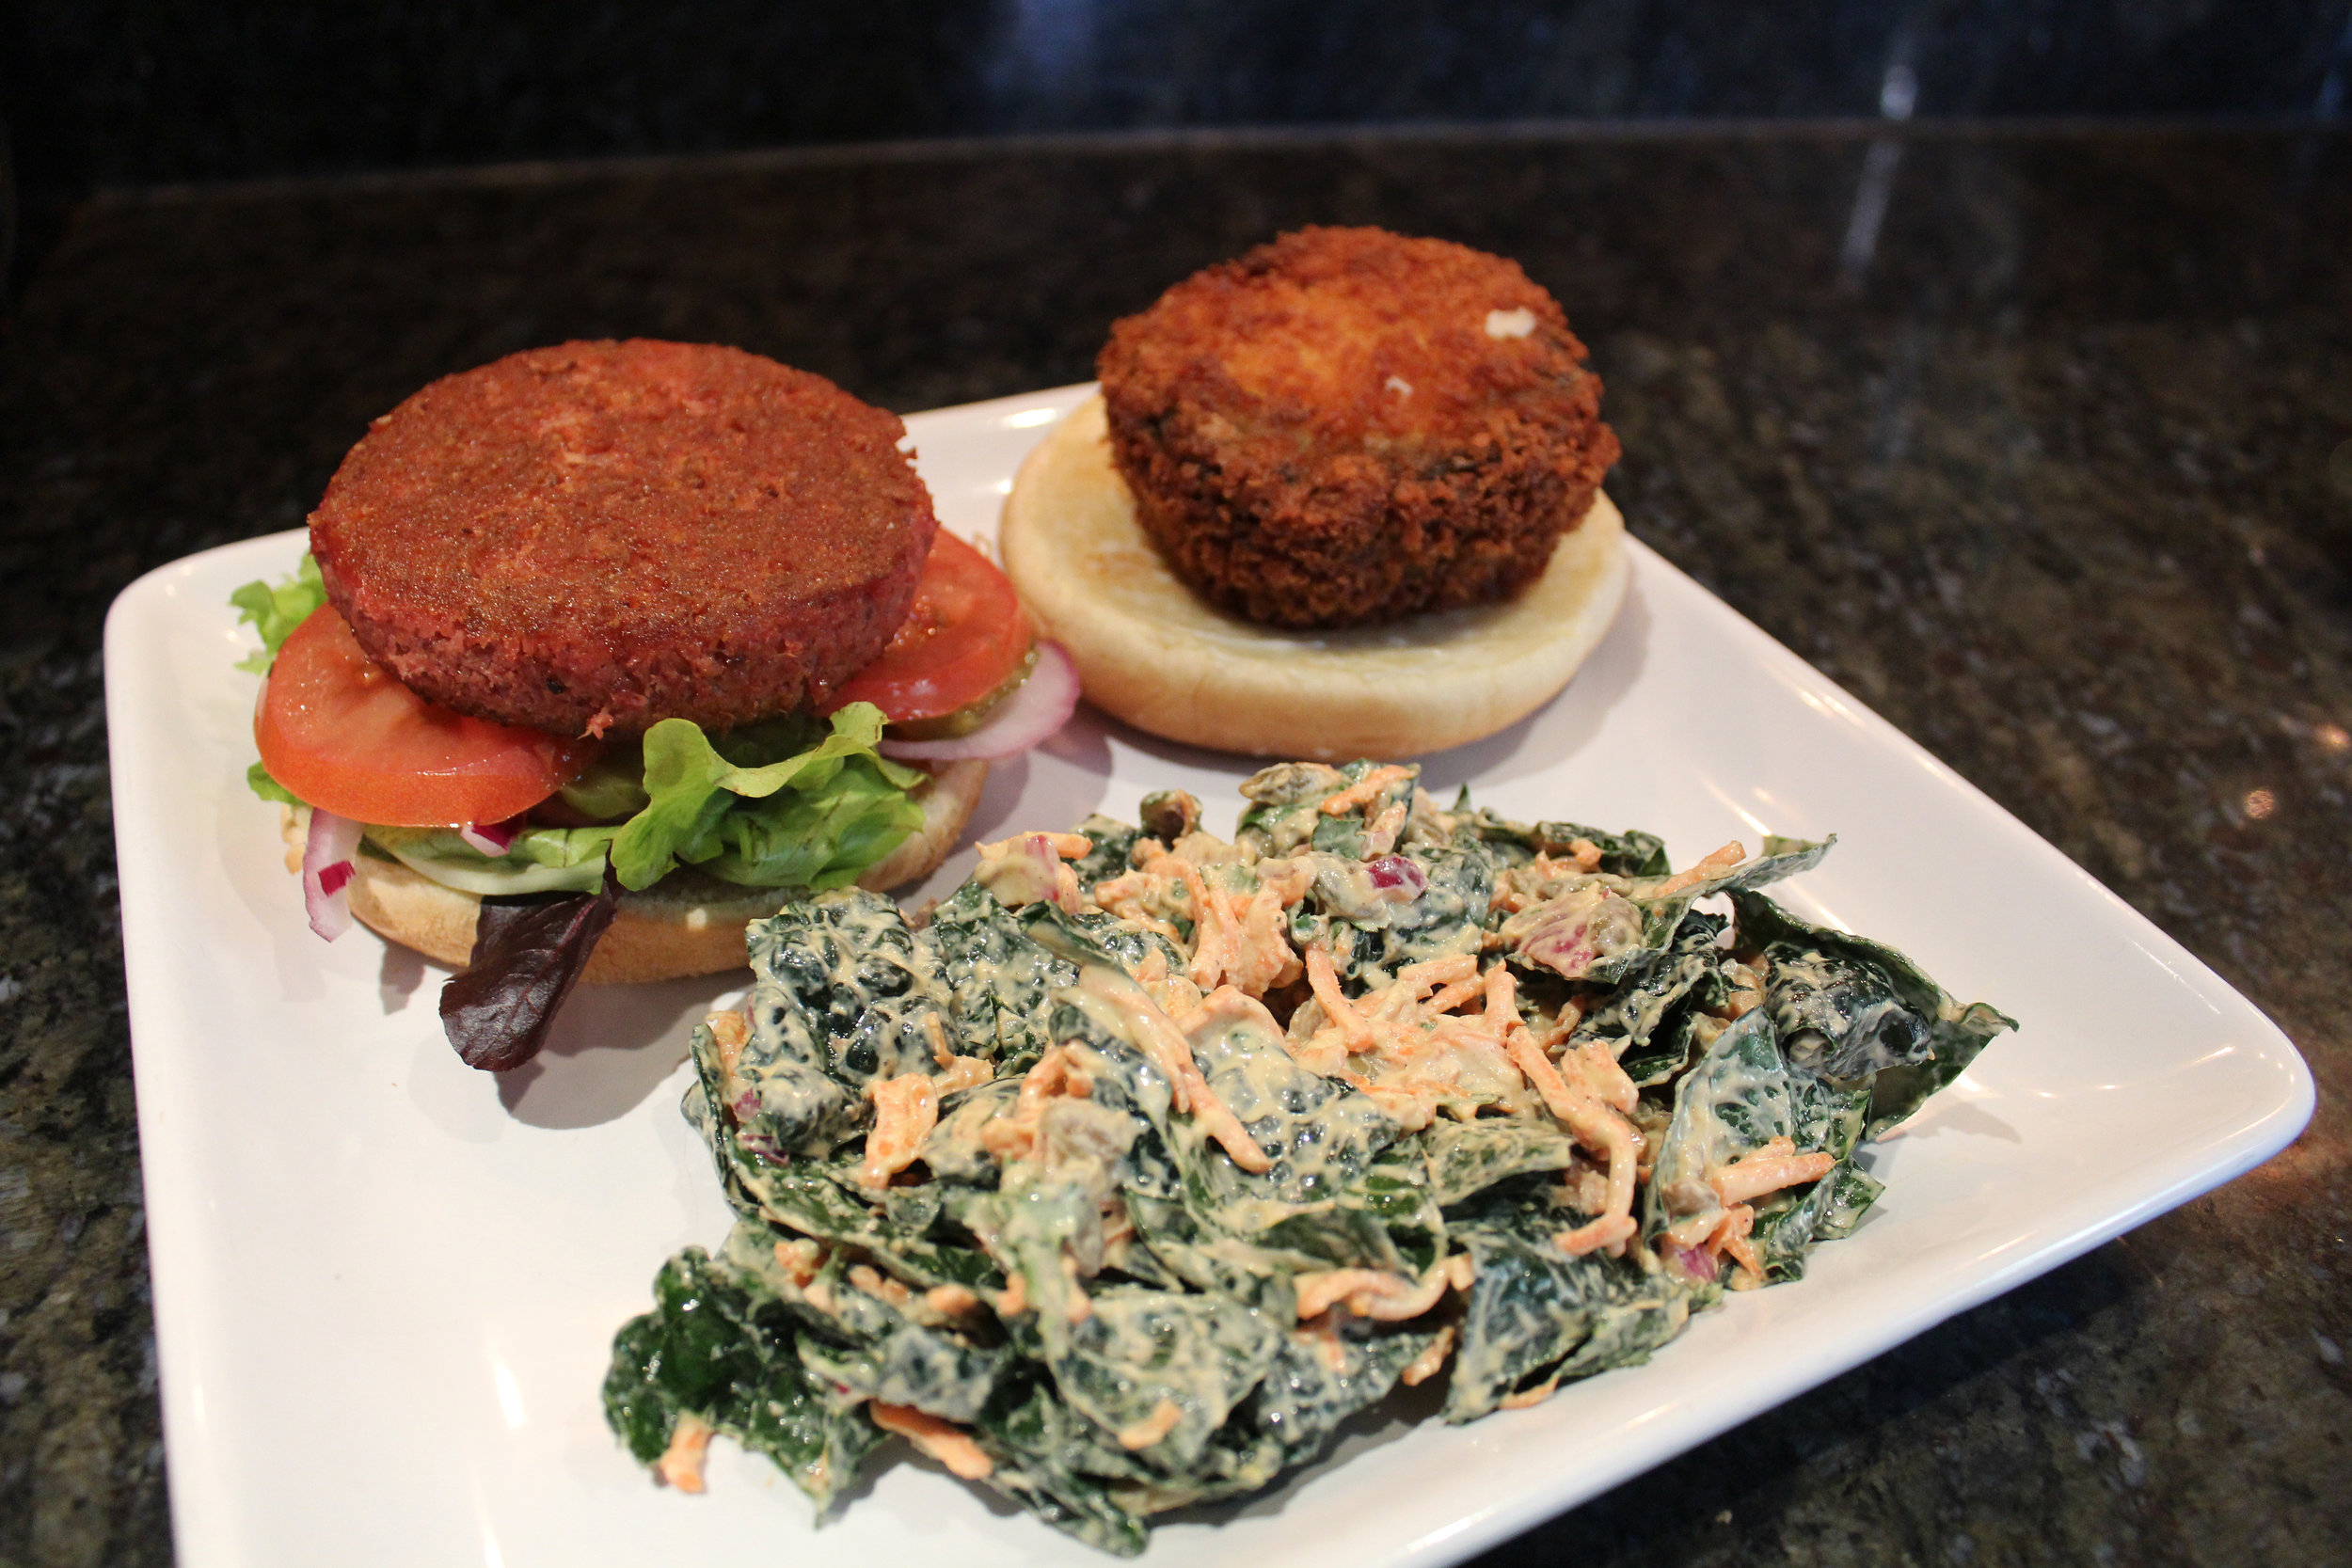 The Beyond Burger meets True Burger! Served with Kale Salad.